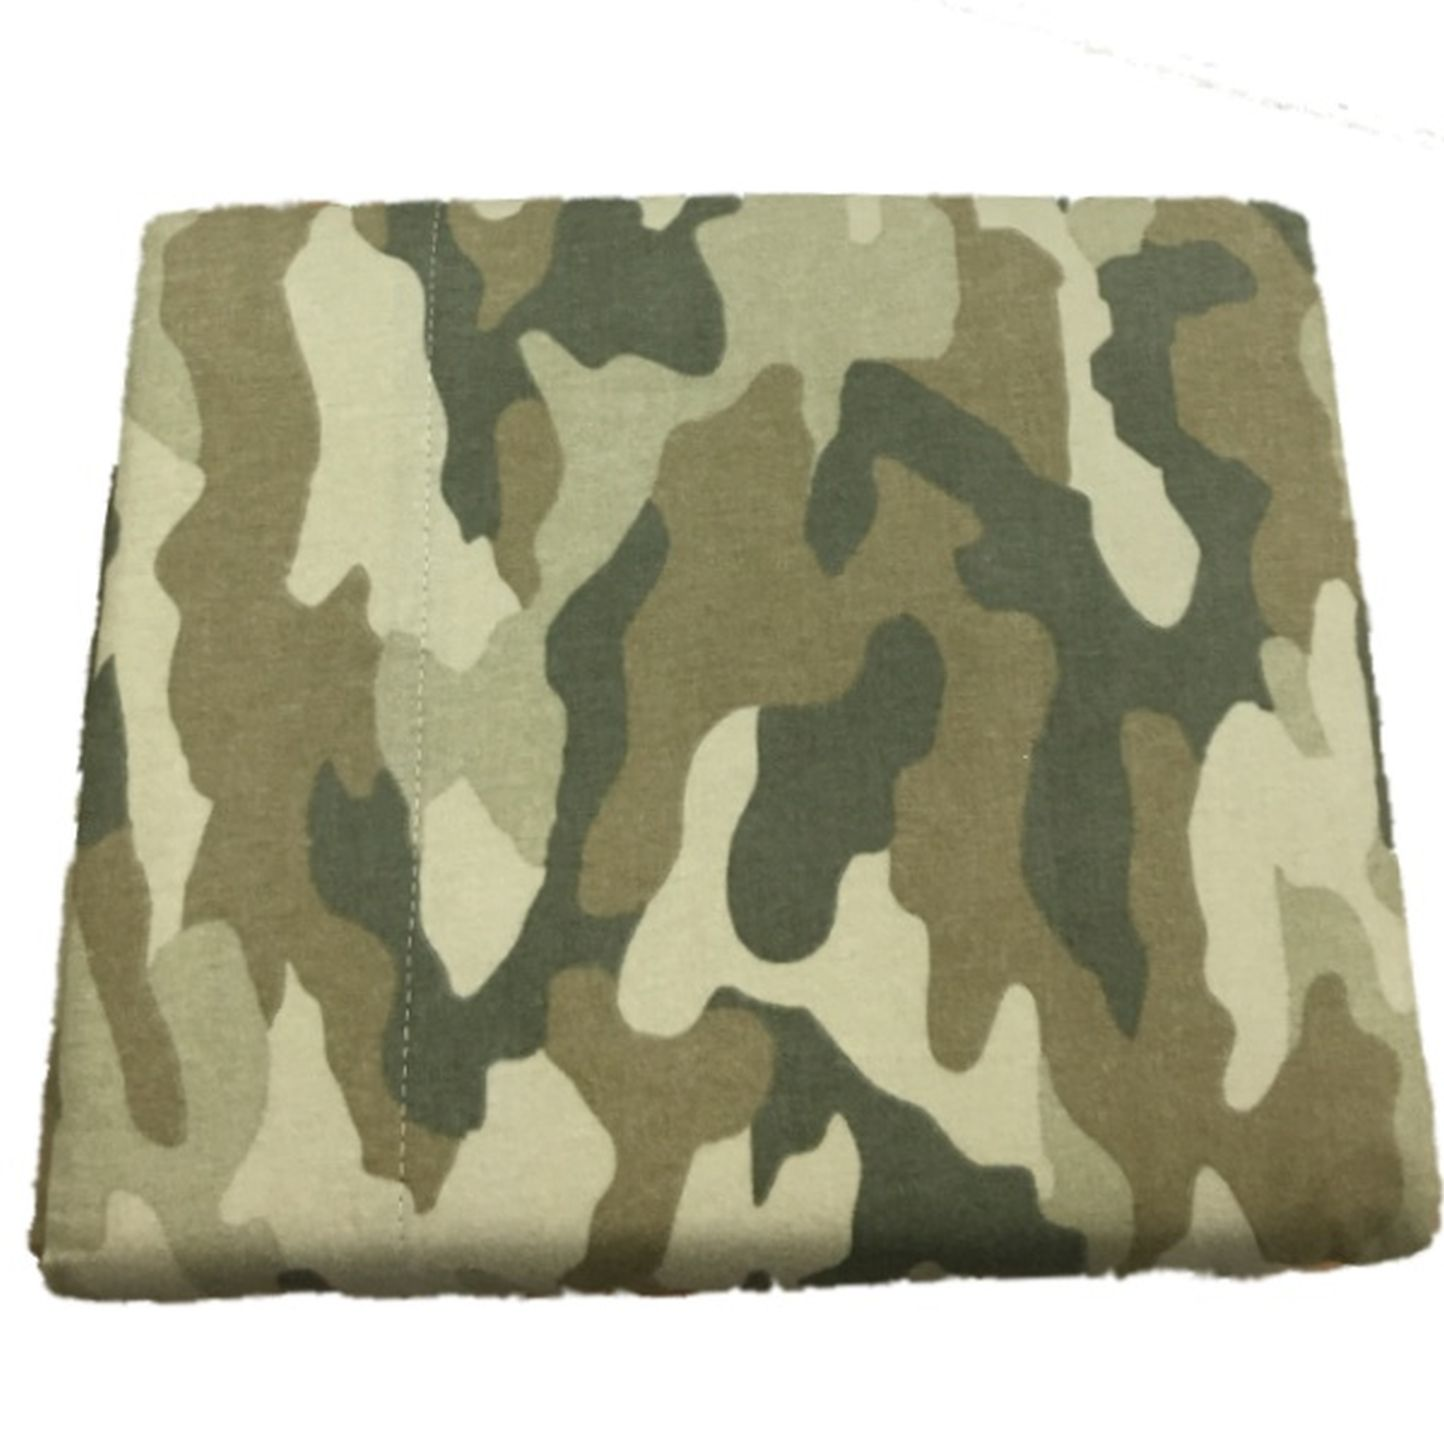 Cuddle Duds Camo Flannel Sheet Set Green Camouflage Queen...